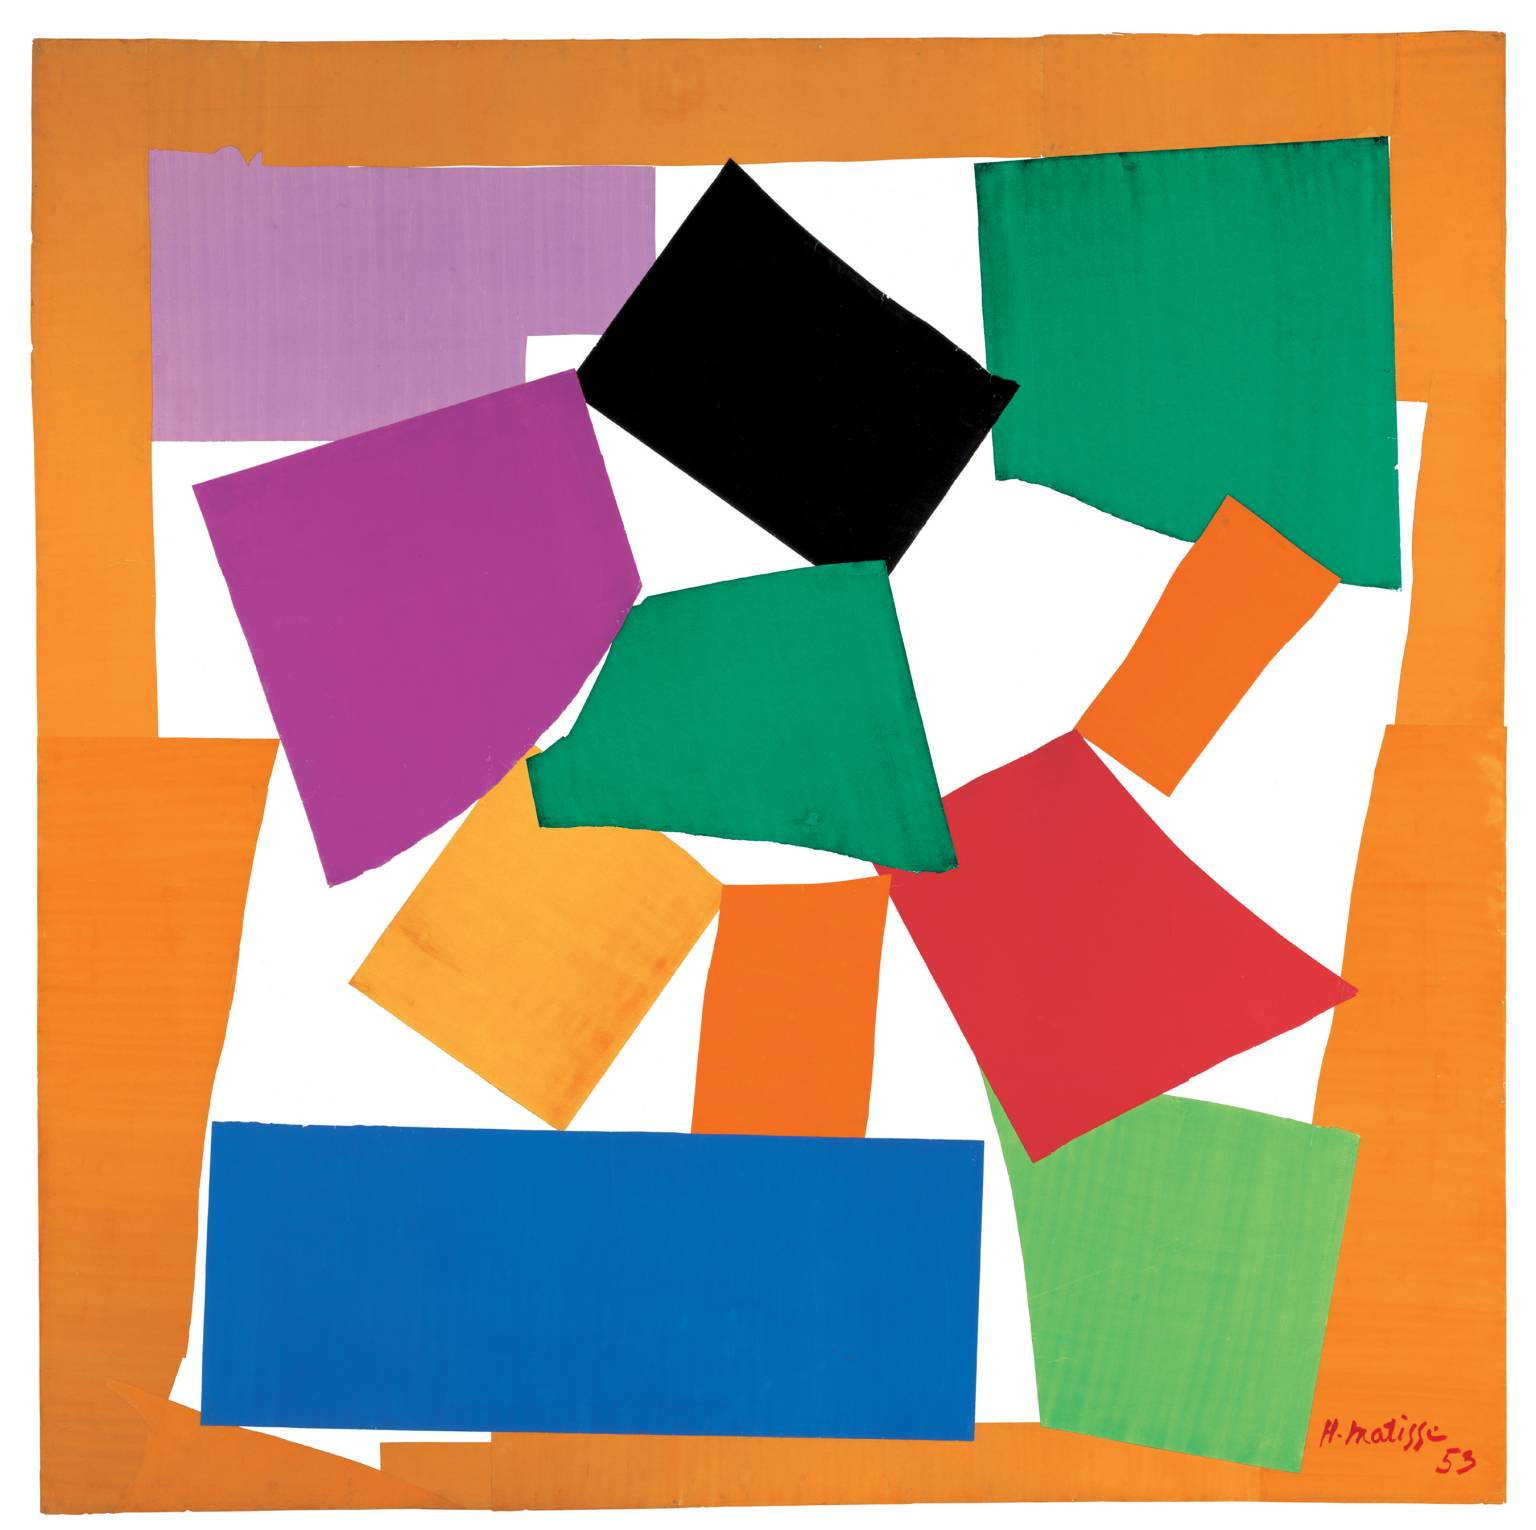 Henri Matisse, 'The Snail' 1953